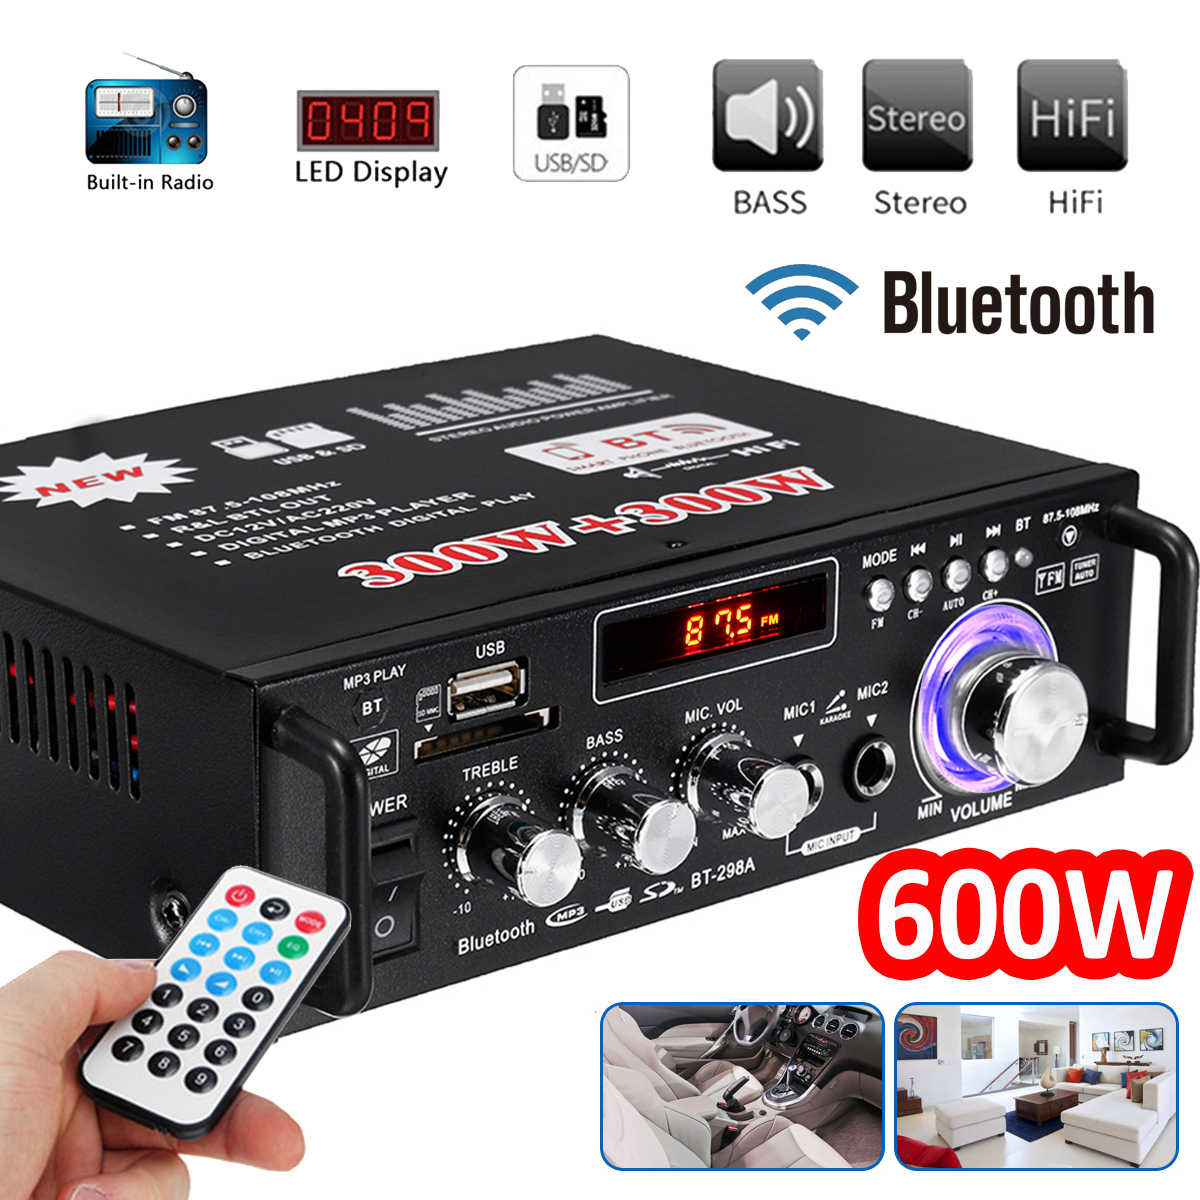 12 V/220 V 600 W Mobil HI FI Penguat Audio Stereo Power Bluetooth FM Radio 2CH Home Theater Amplifier mini Amplificador Audio